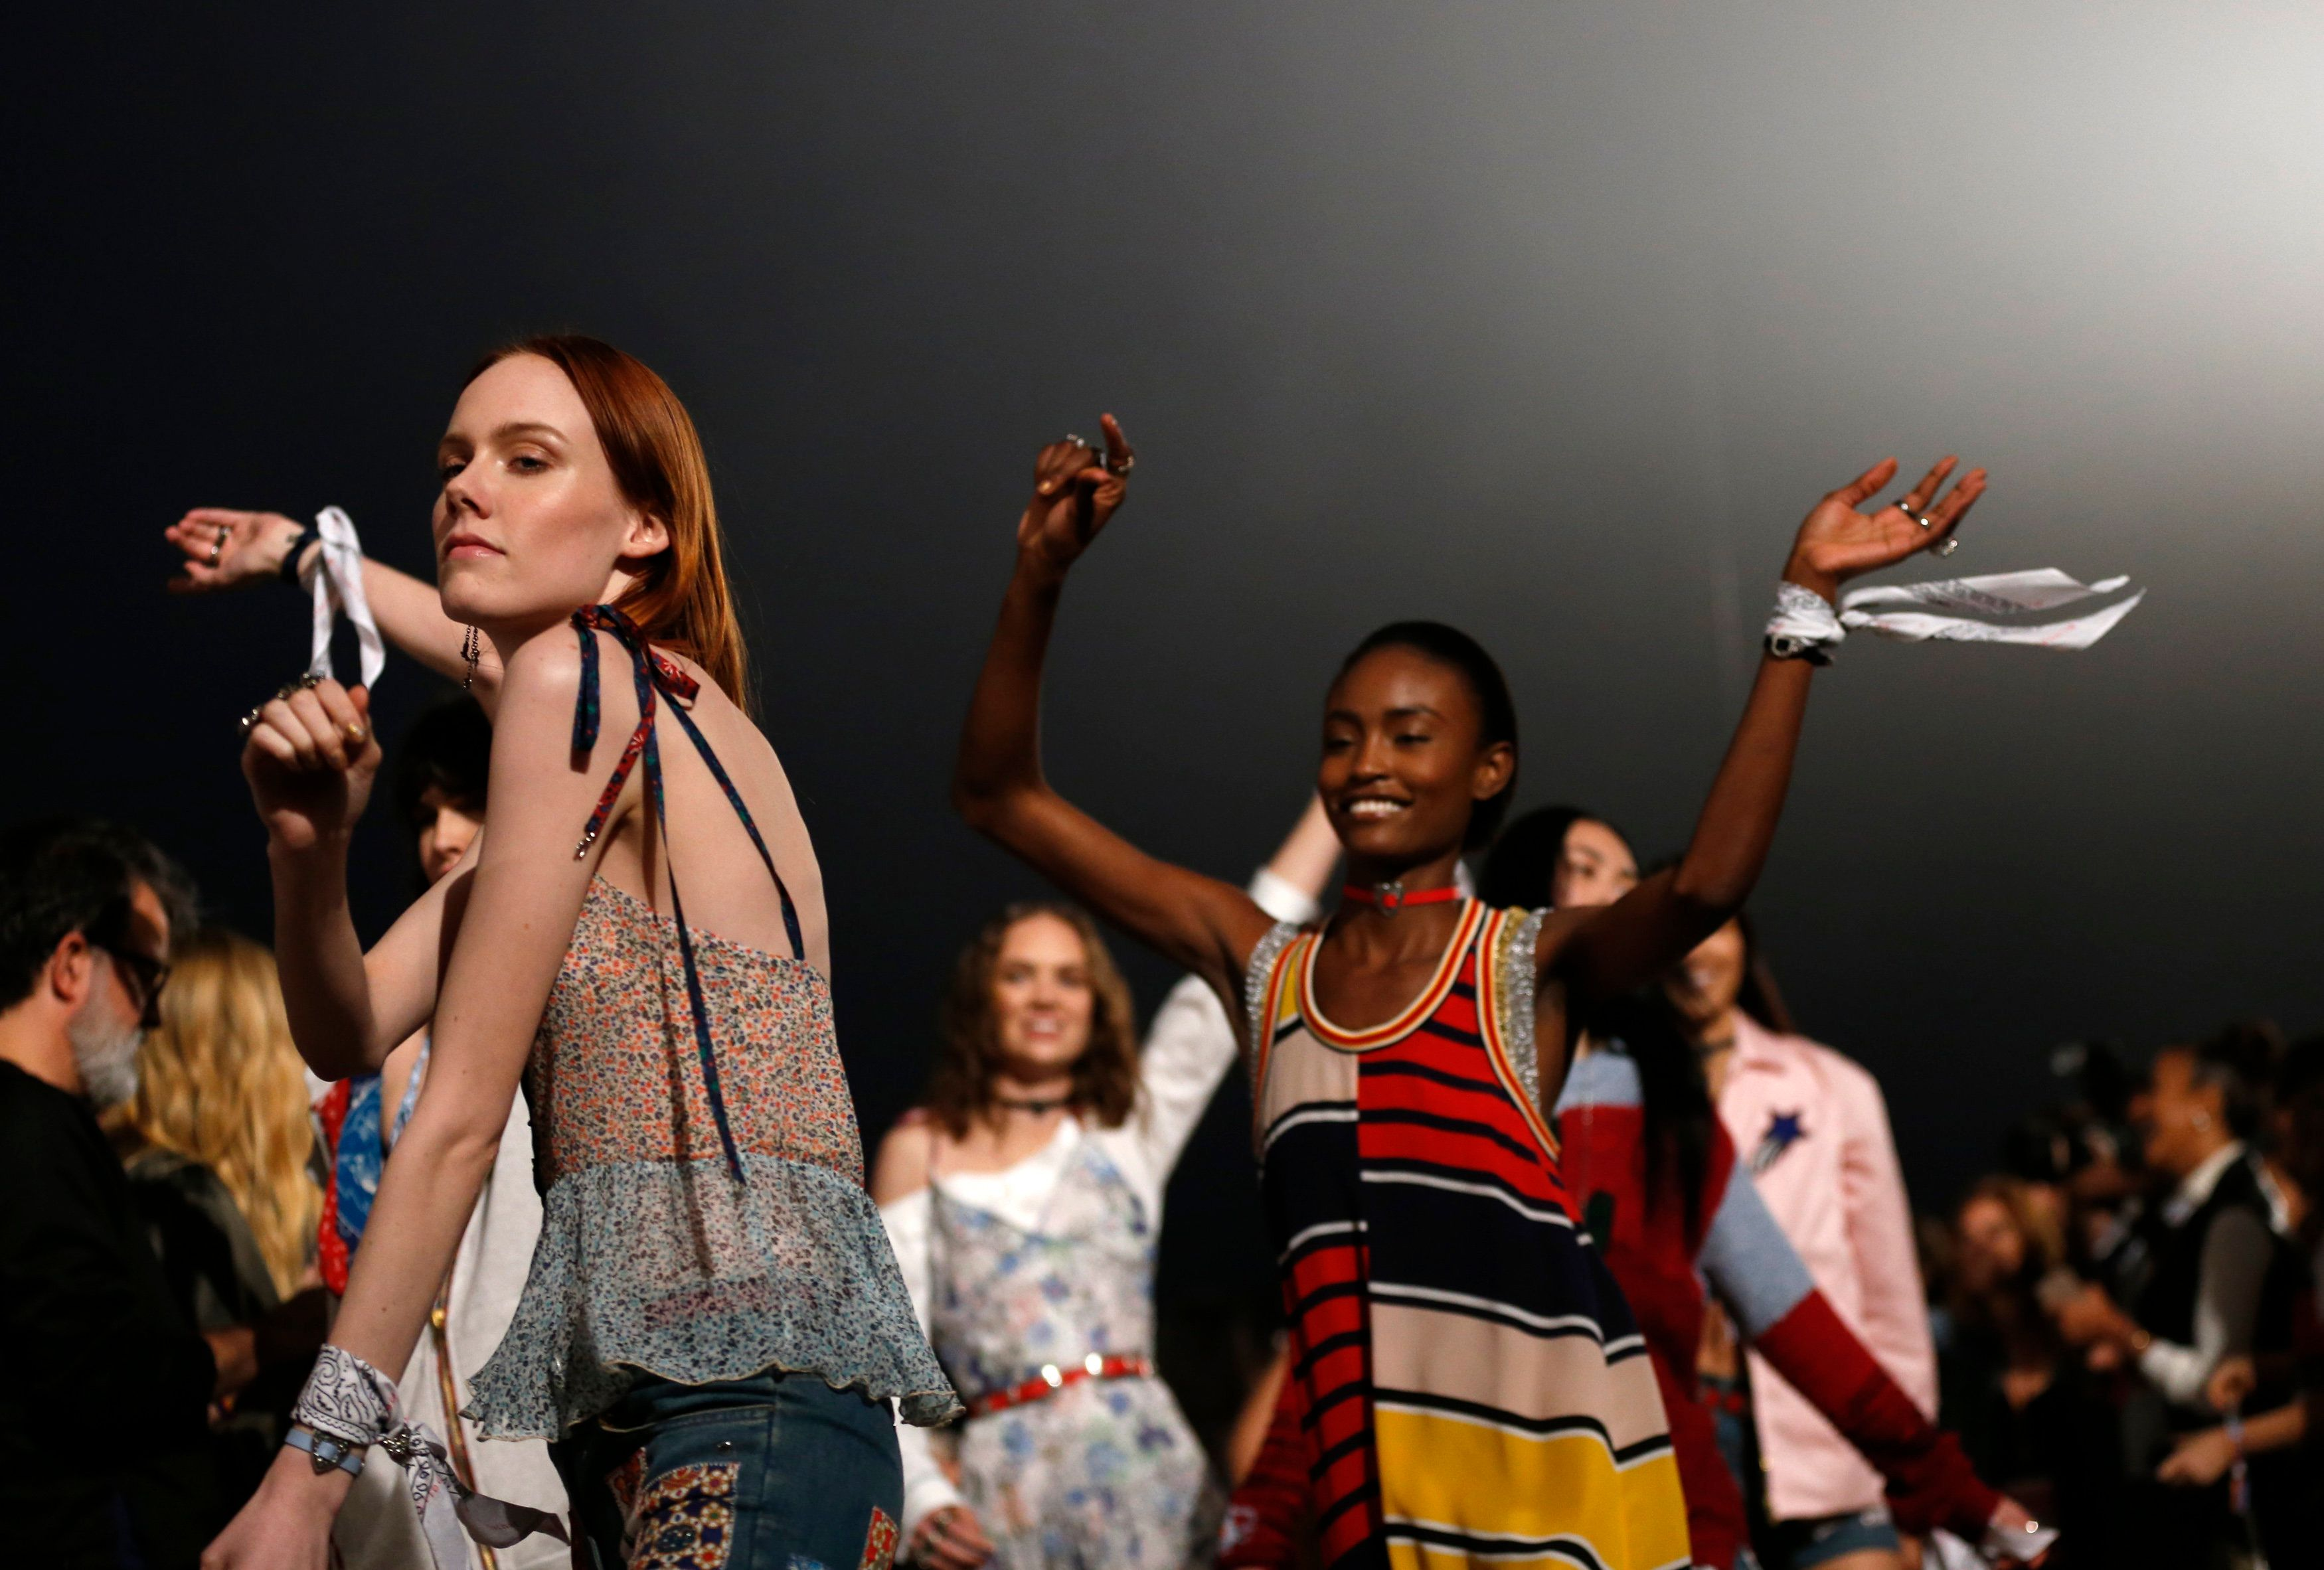 Models walk the runway during the 2017 Tommy Hilfiger Runway Show in Venice, California, on Feb.8.